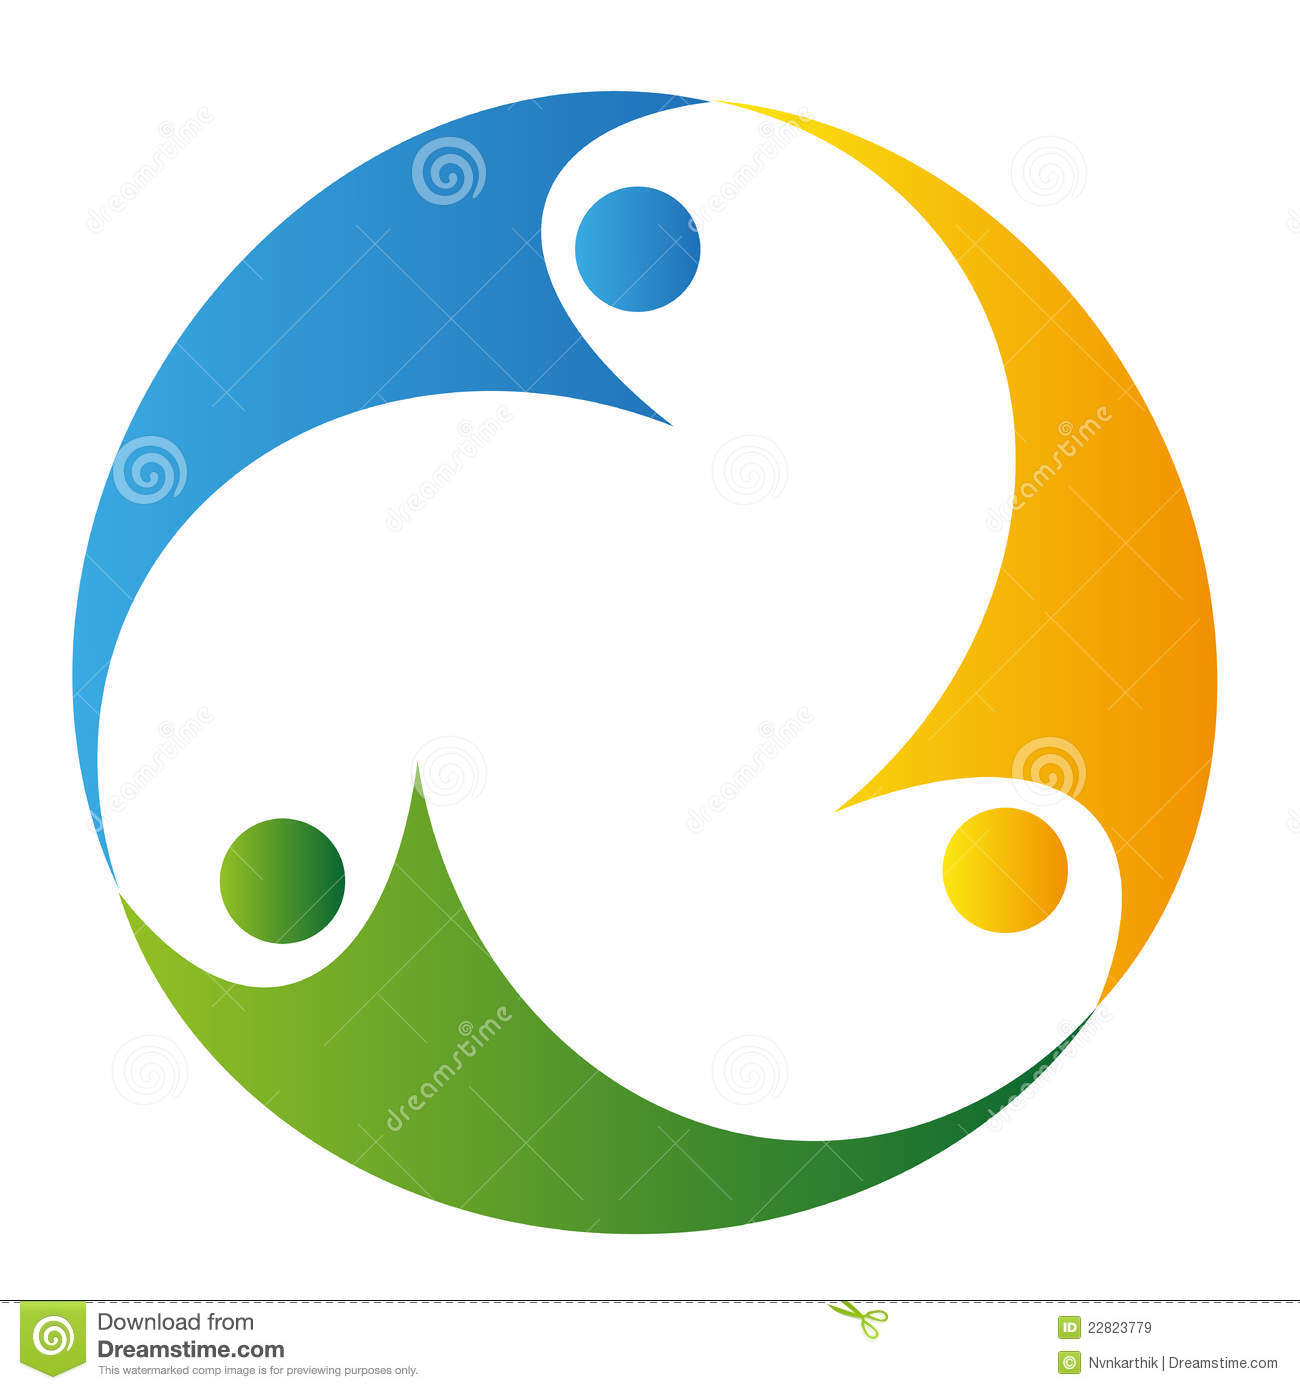 httpthumbs dreamstime comz  Z Logo Blue Circle